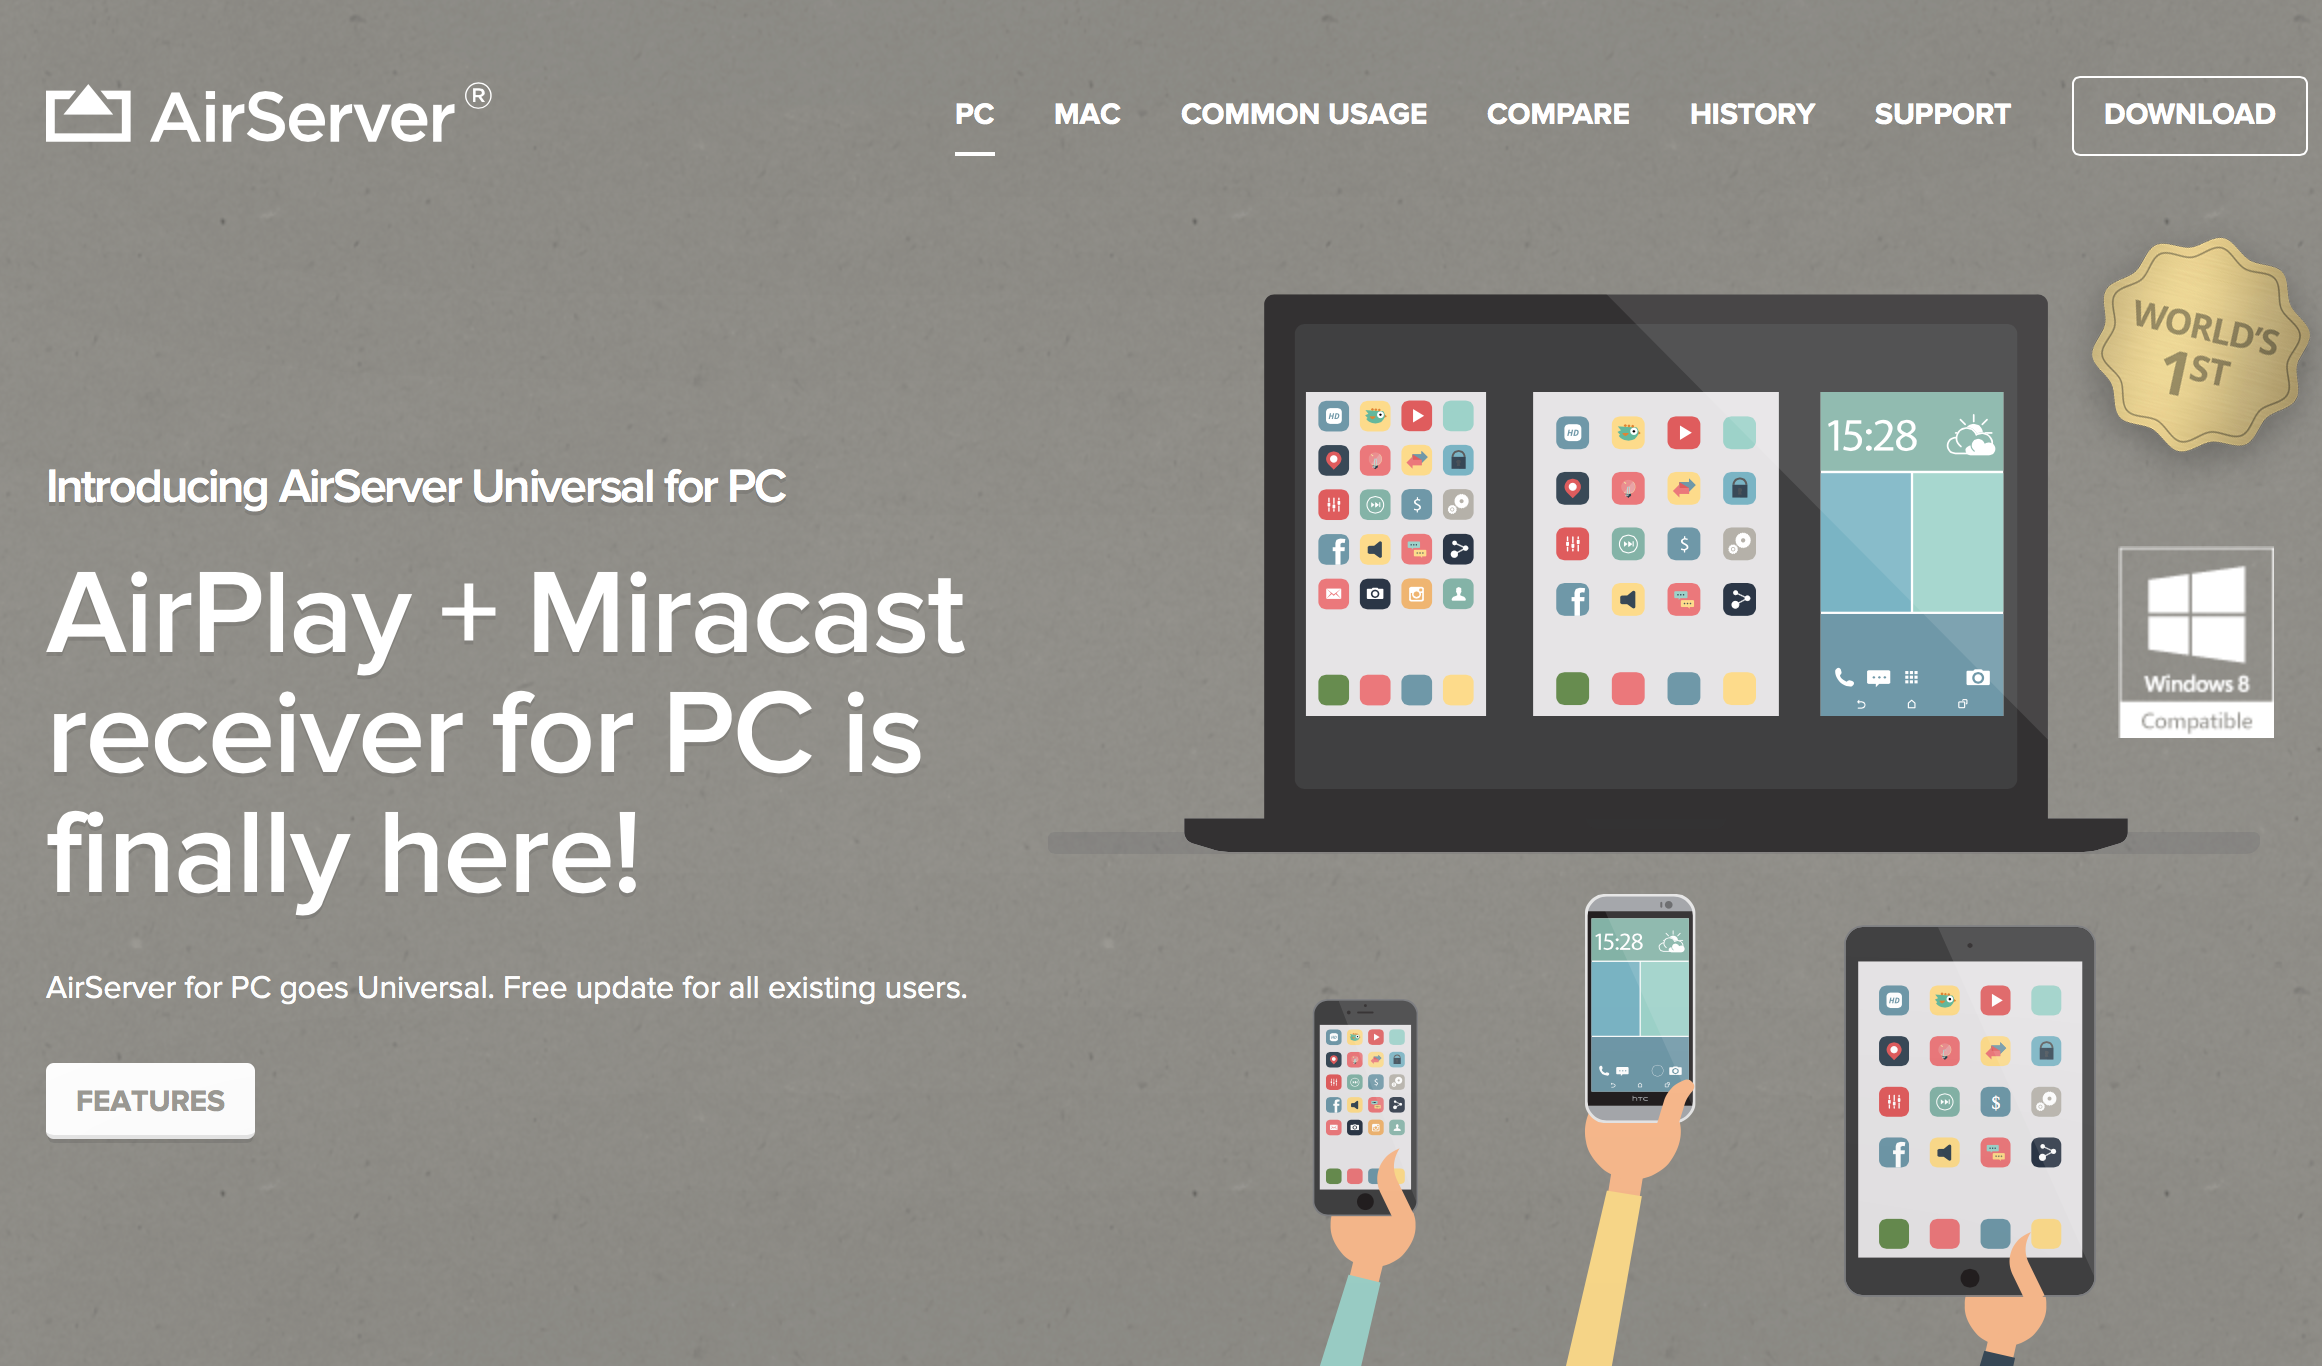 AirServer Universal turns your Windows PC into a universal